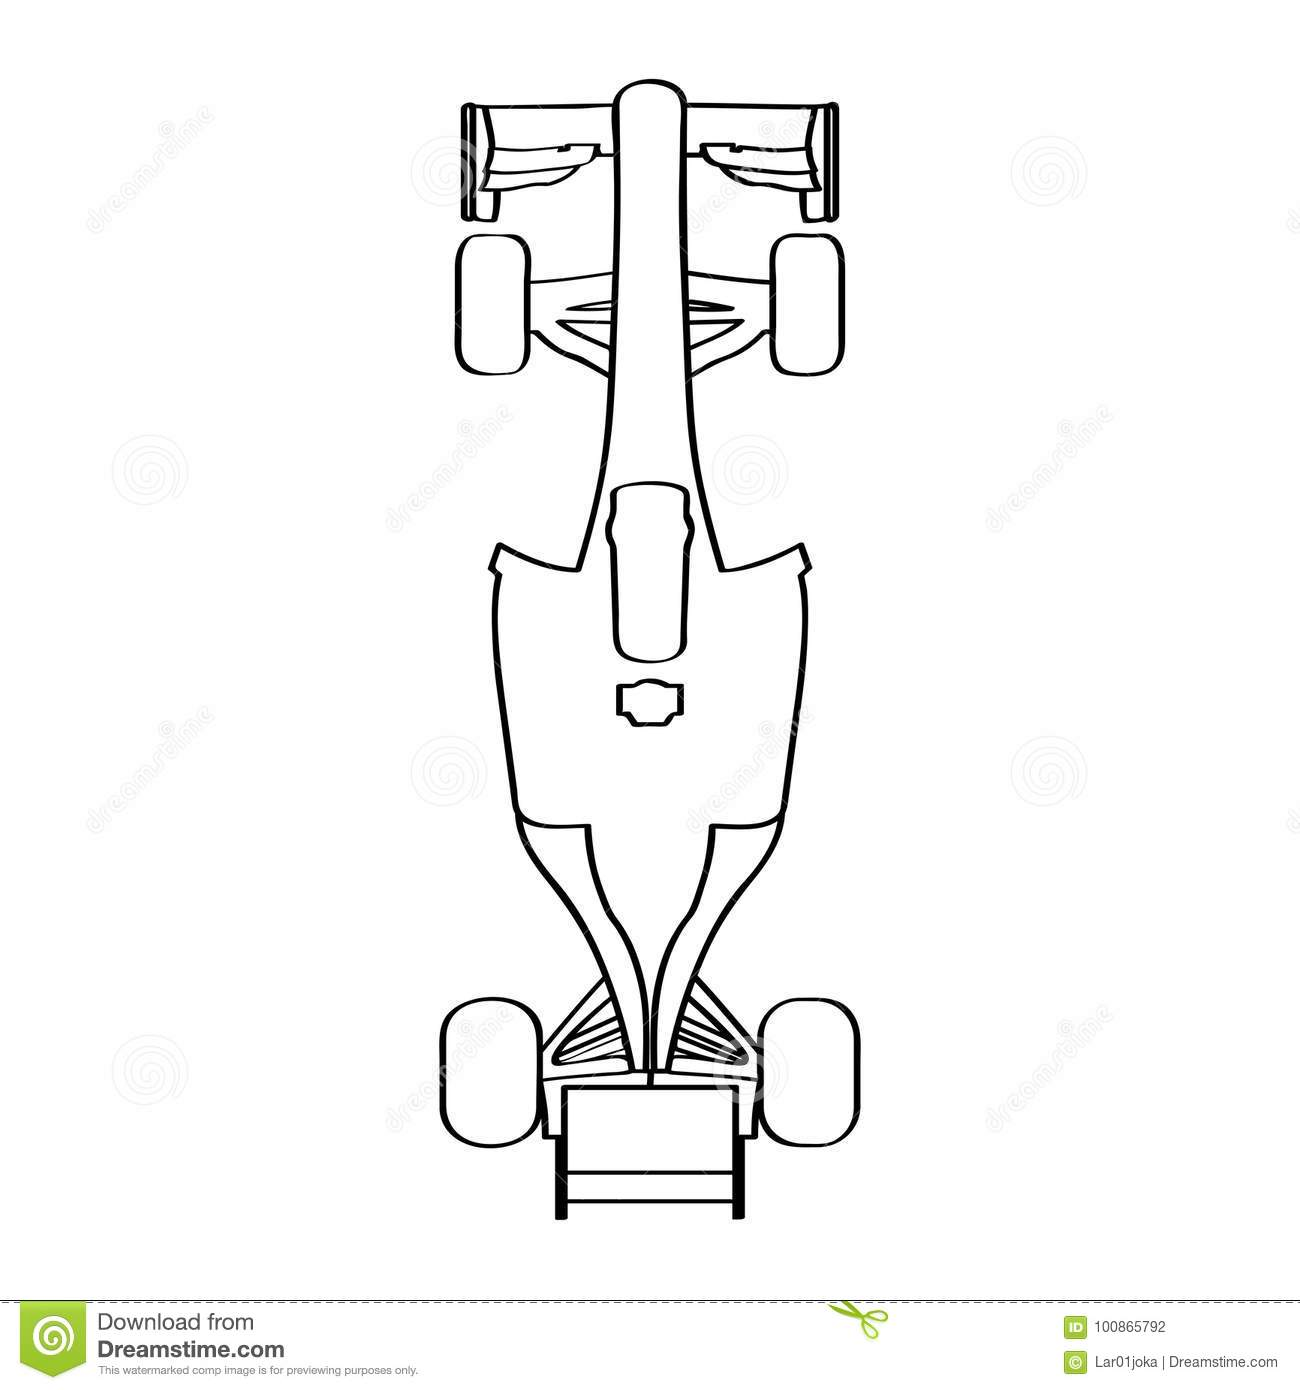 hight resolution of top view of a racing car